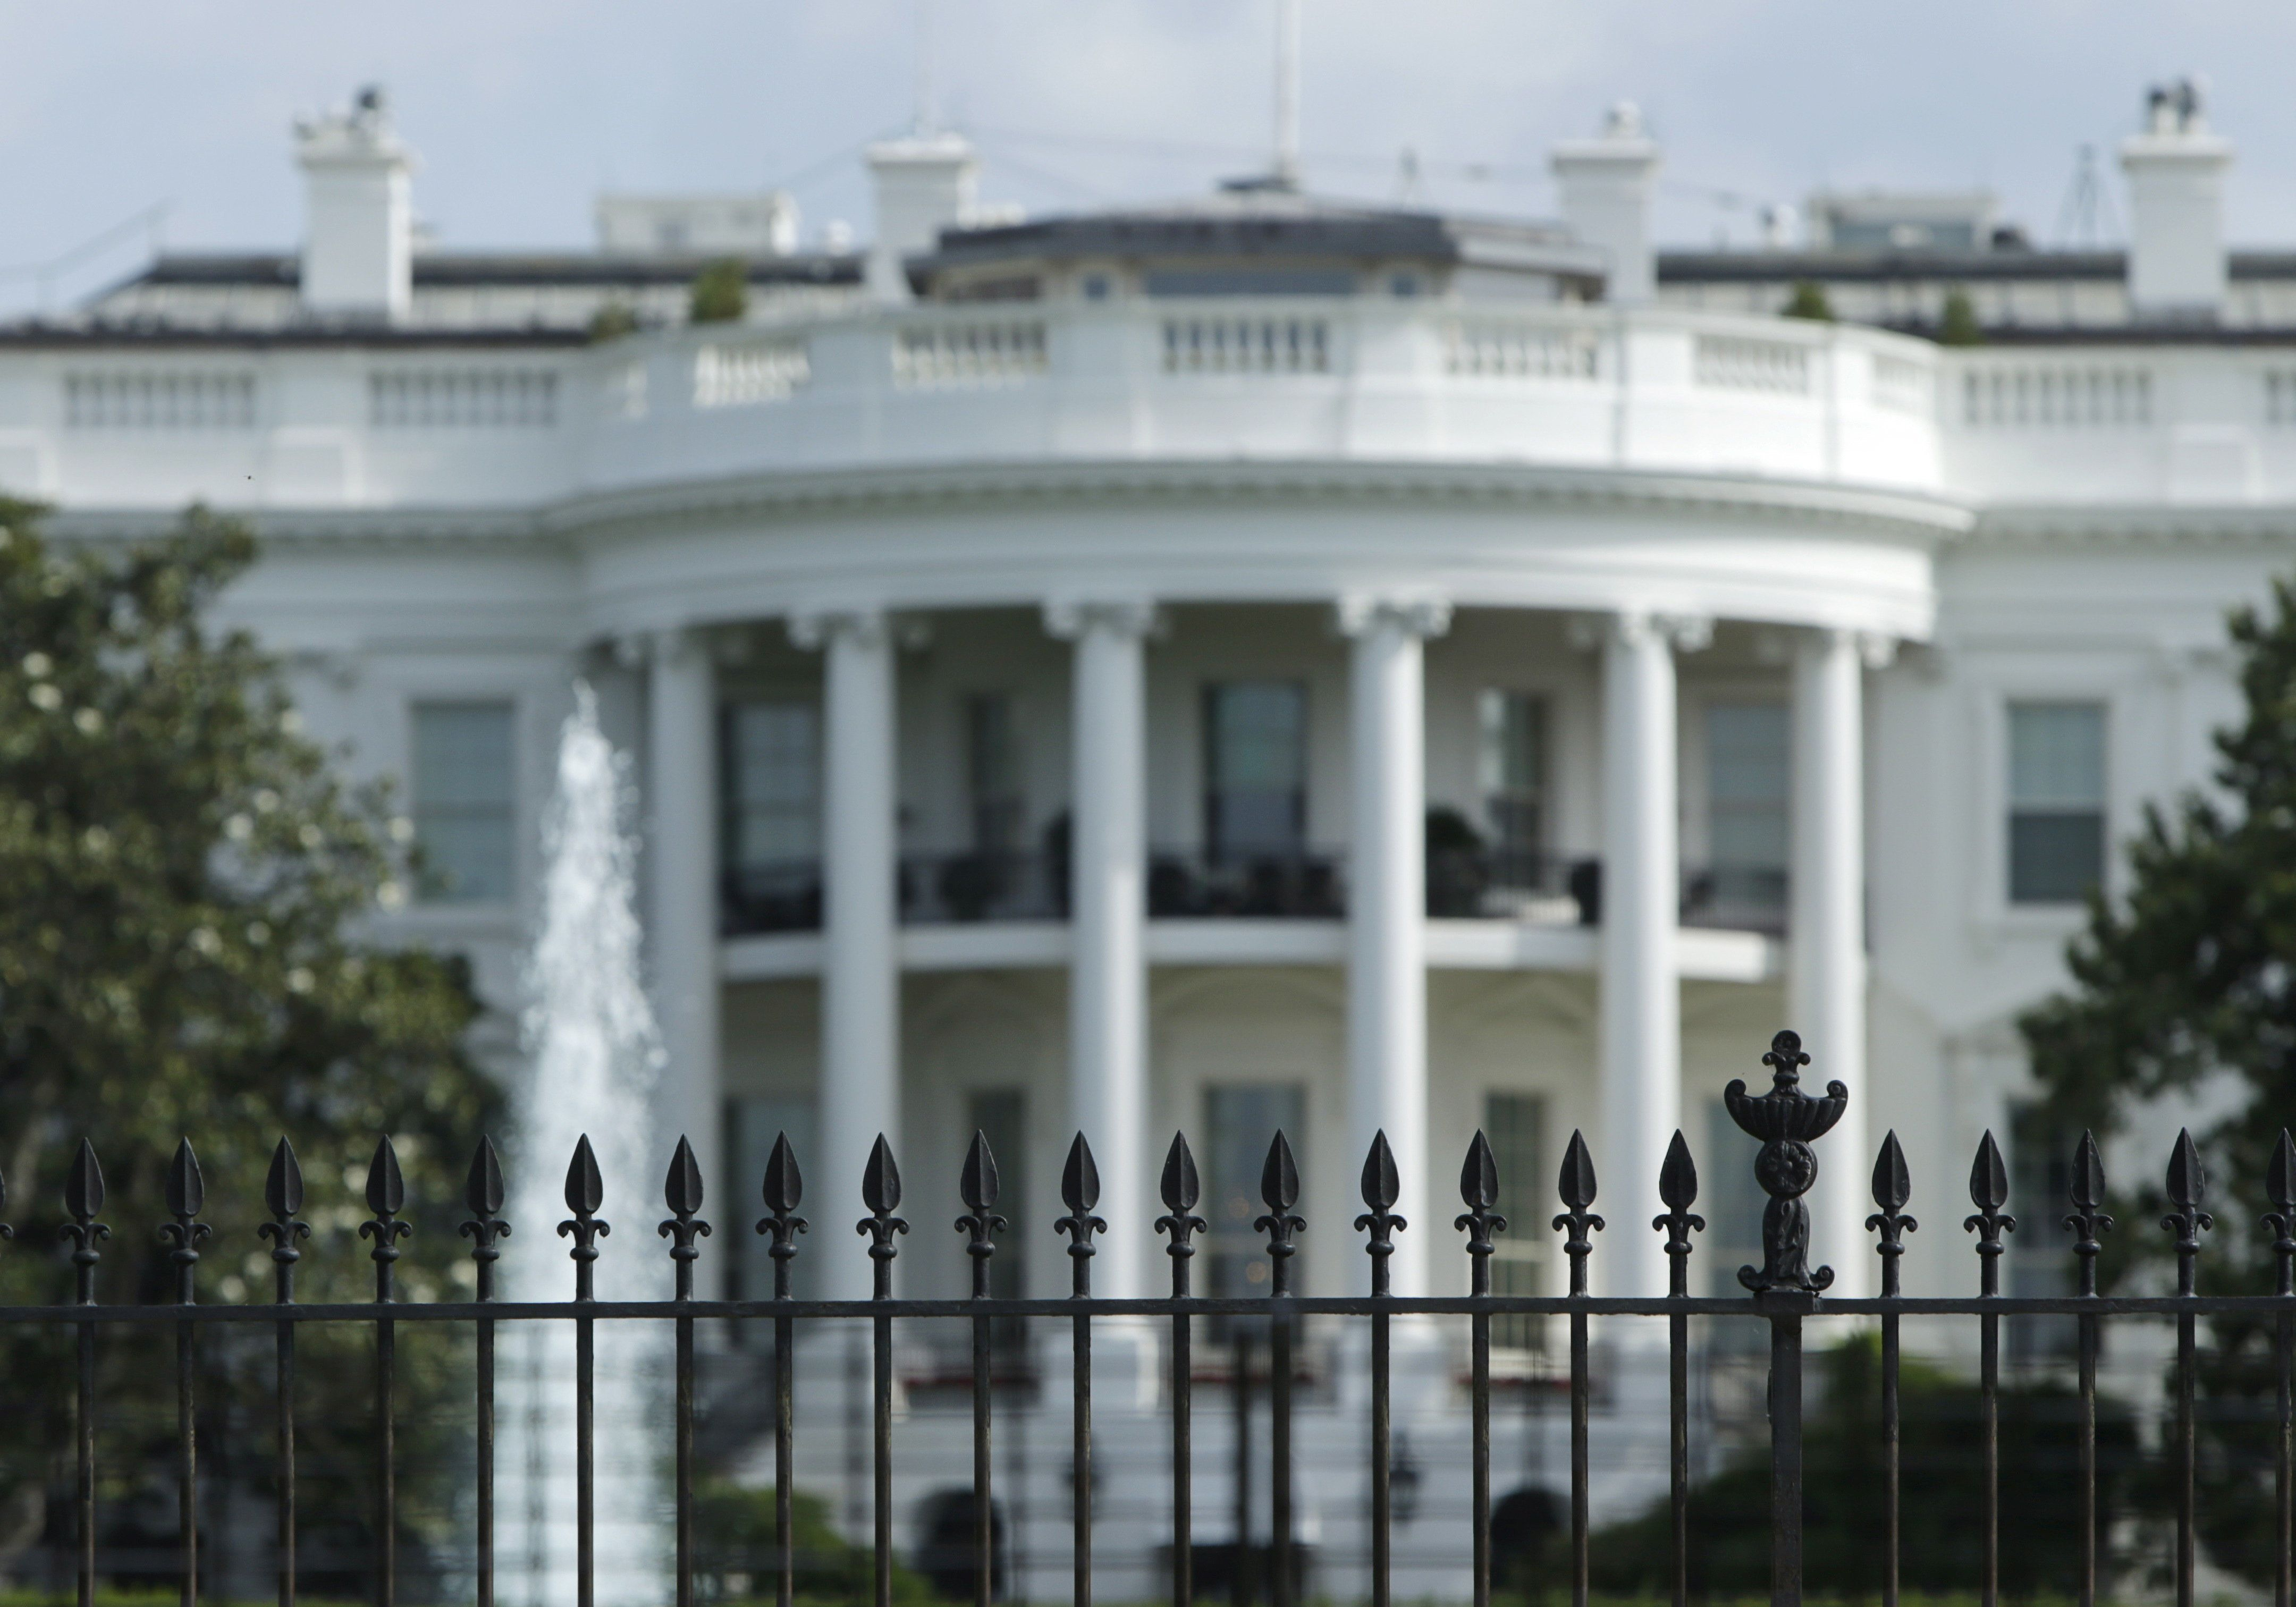 The original South Lawn security fencing is seen at the White House in Washington May 28, 2015. Anti-climb spikes will be added to the fence in late July in an attempt to quell fence jumpers at the Executive Mansion on  in Washington.   REUTERS/Gary Cameron